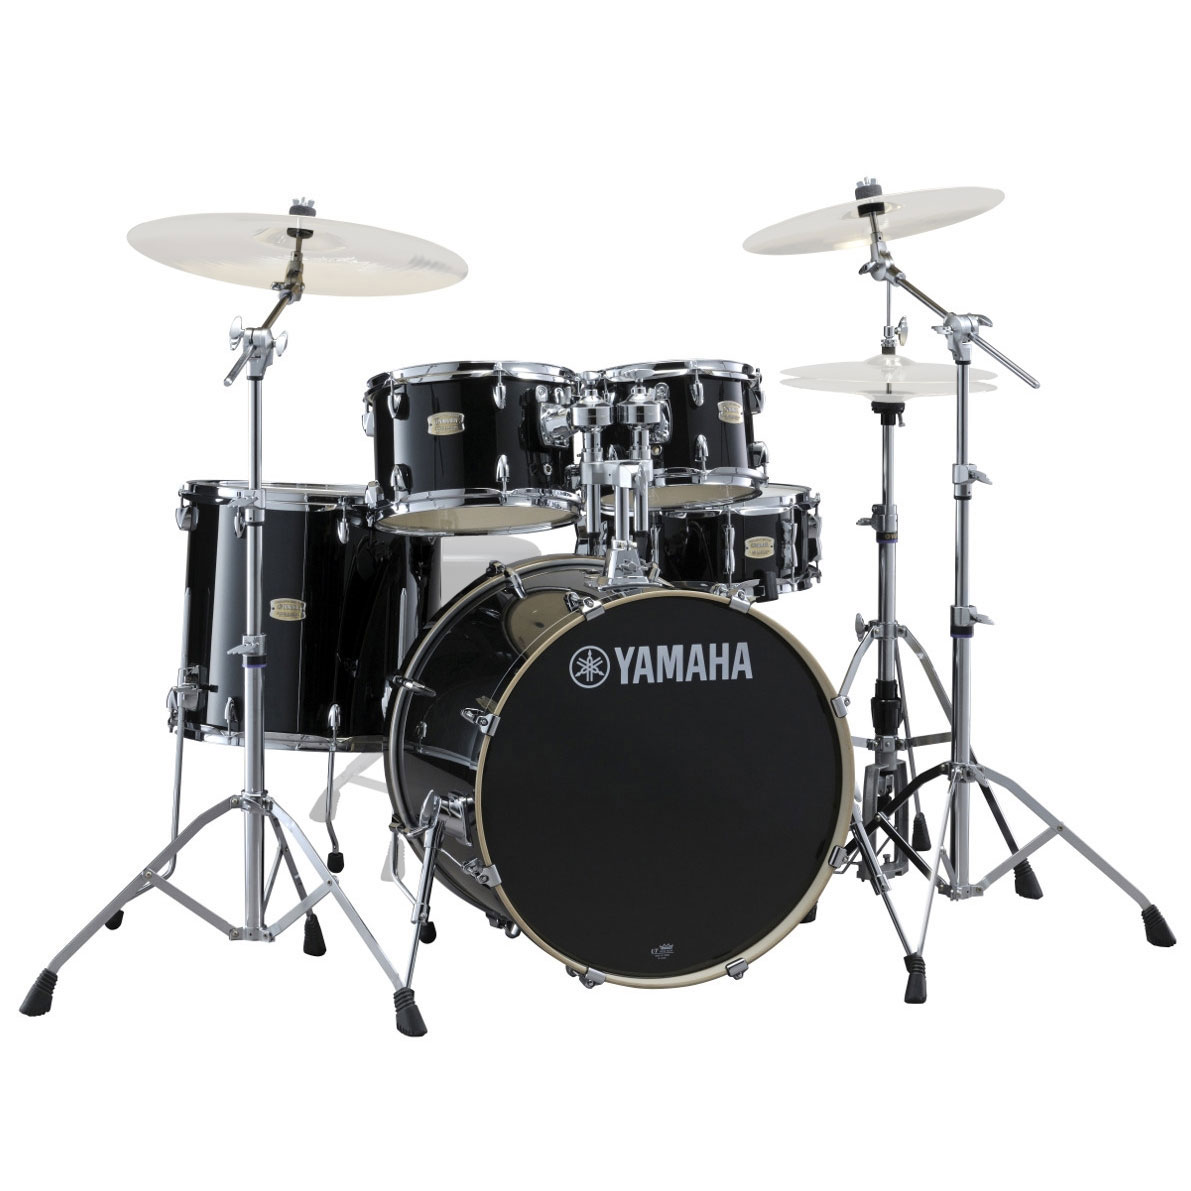 "Yamaha Stage Custom 5-Piece Rock Drum Set with HW-780 Hardware Pack (22"" Bass, 10/12/16"" Toms, 14"" Snare)"